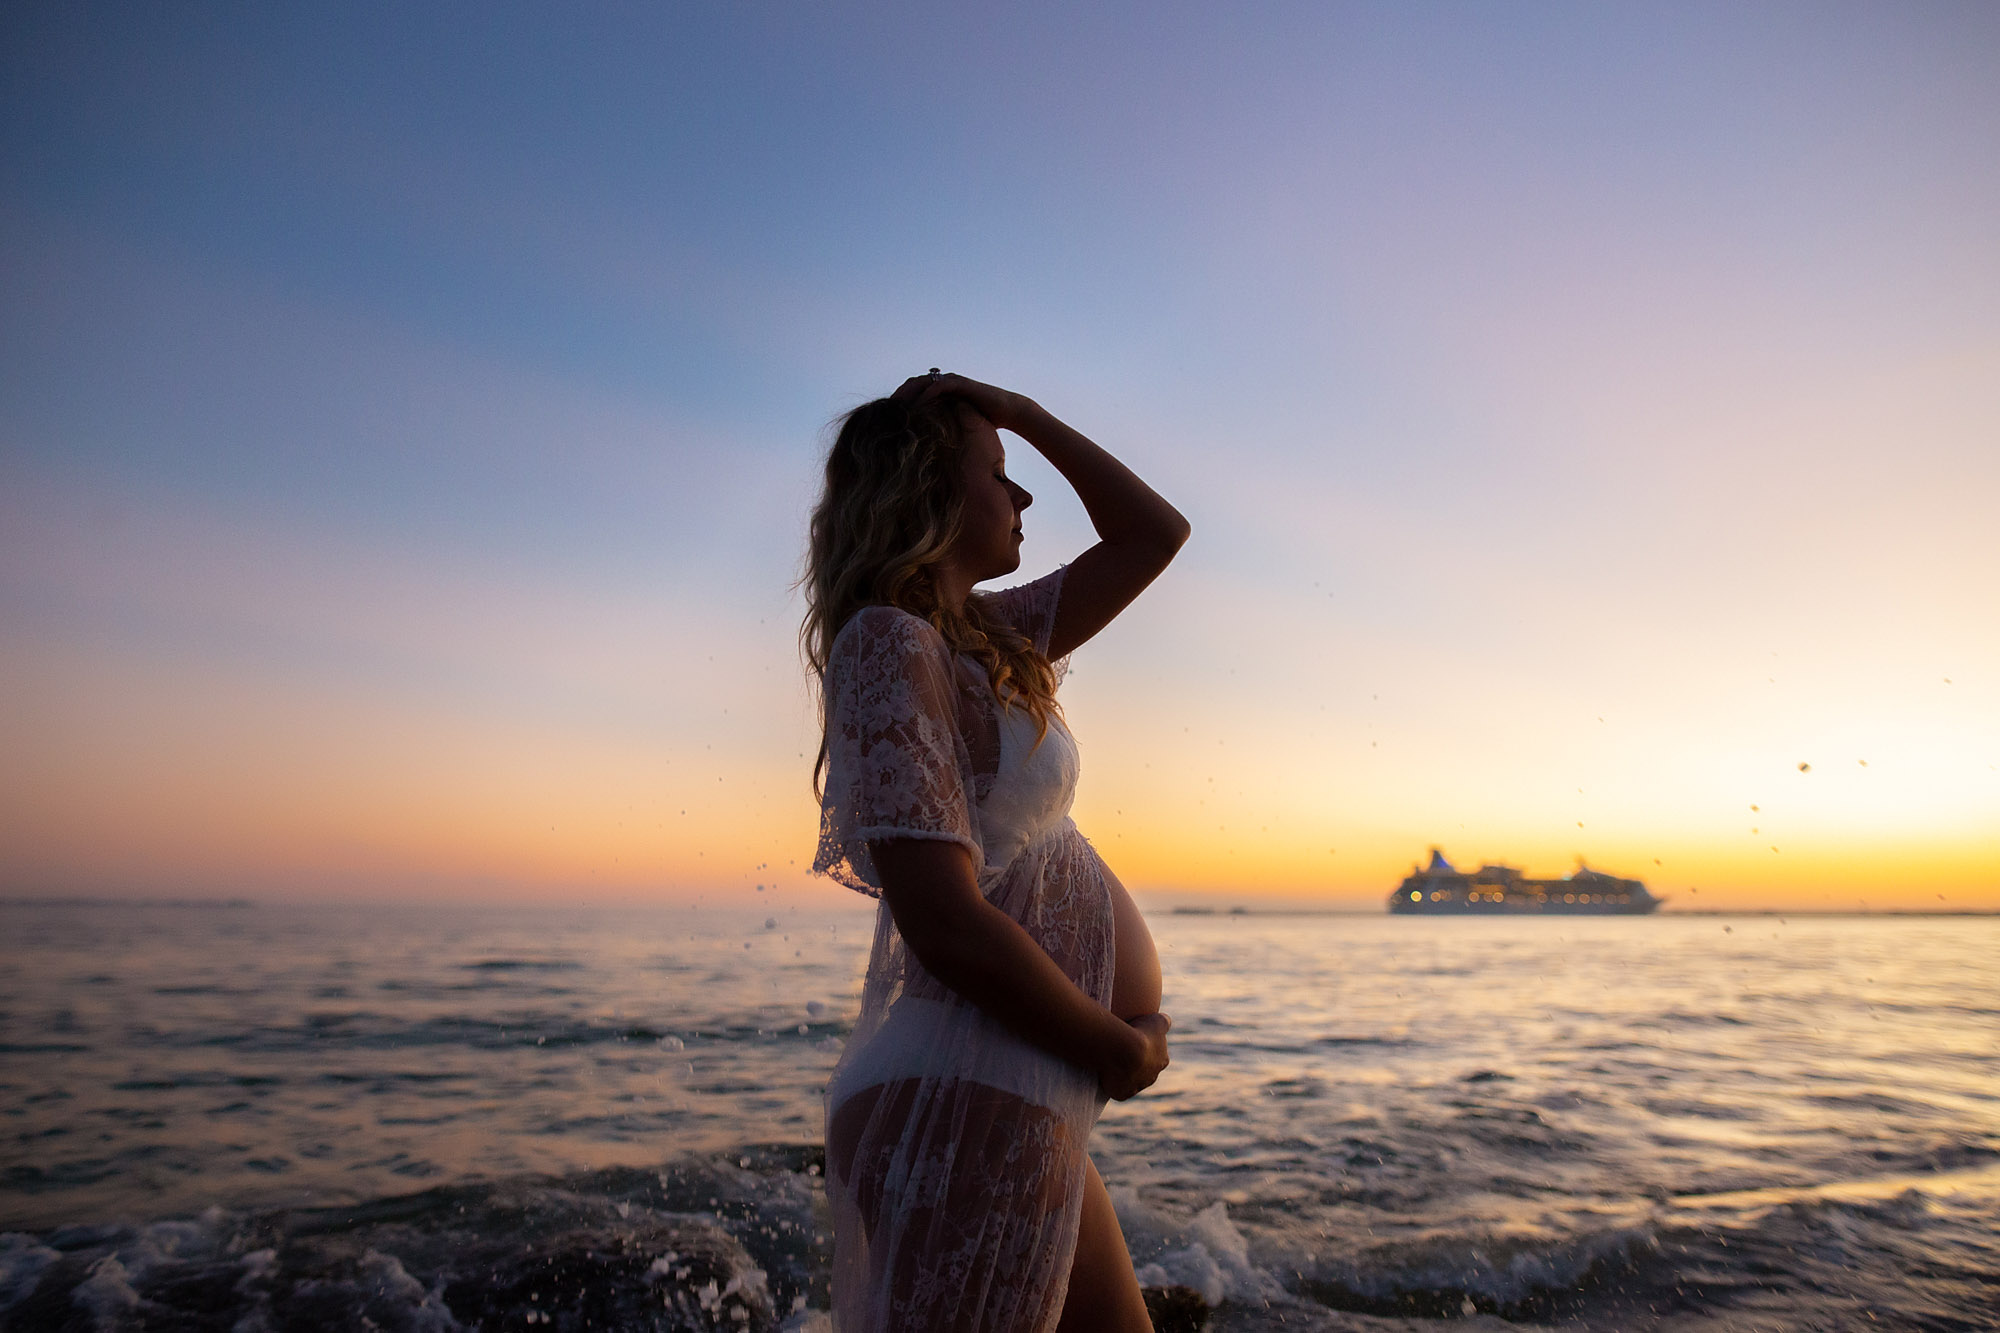 beach sunset photographer, maternity photo session in the water